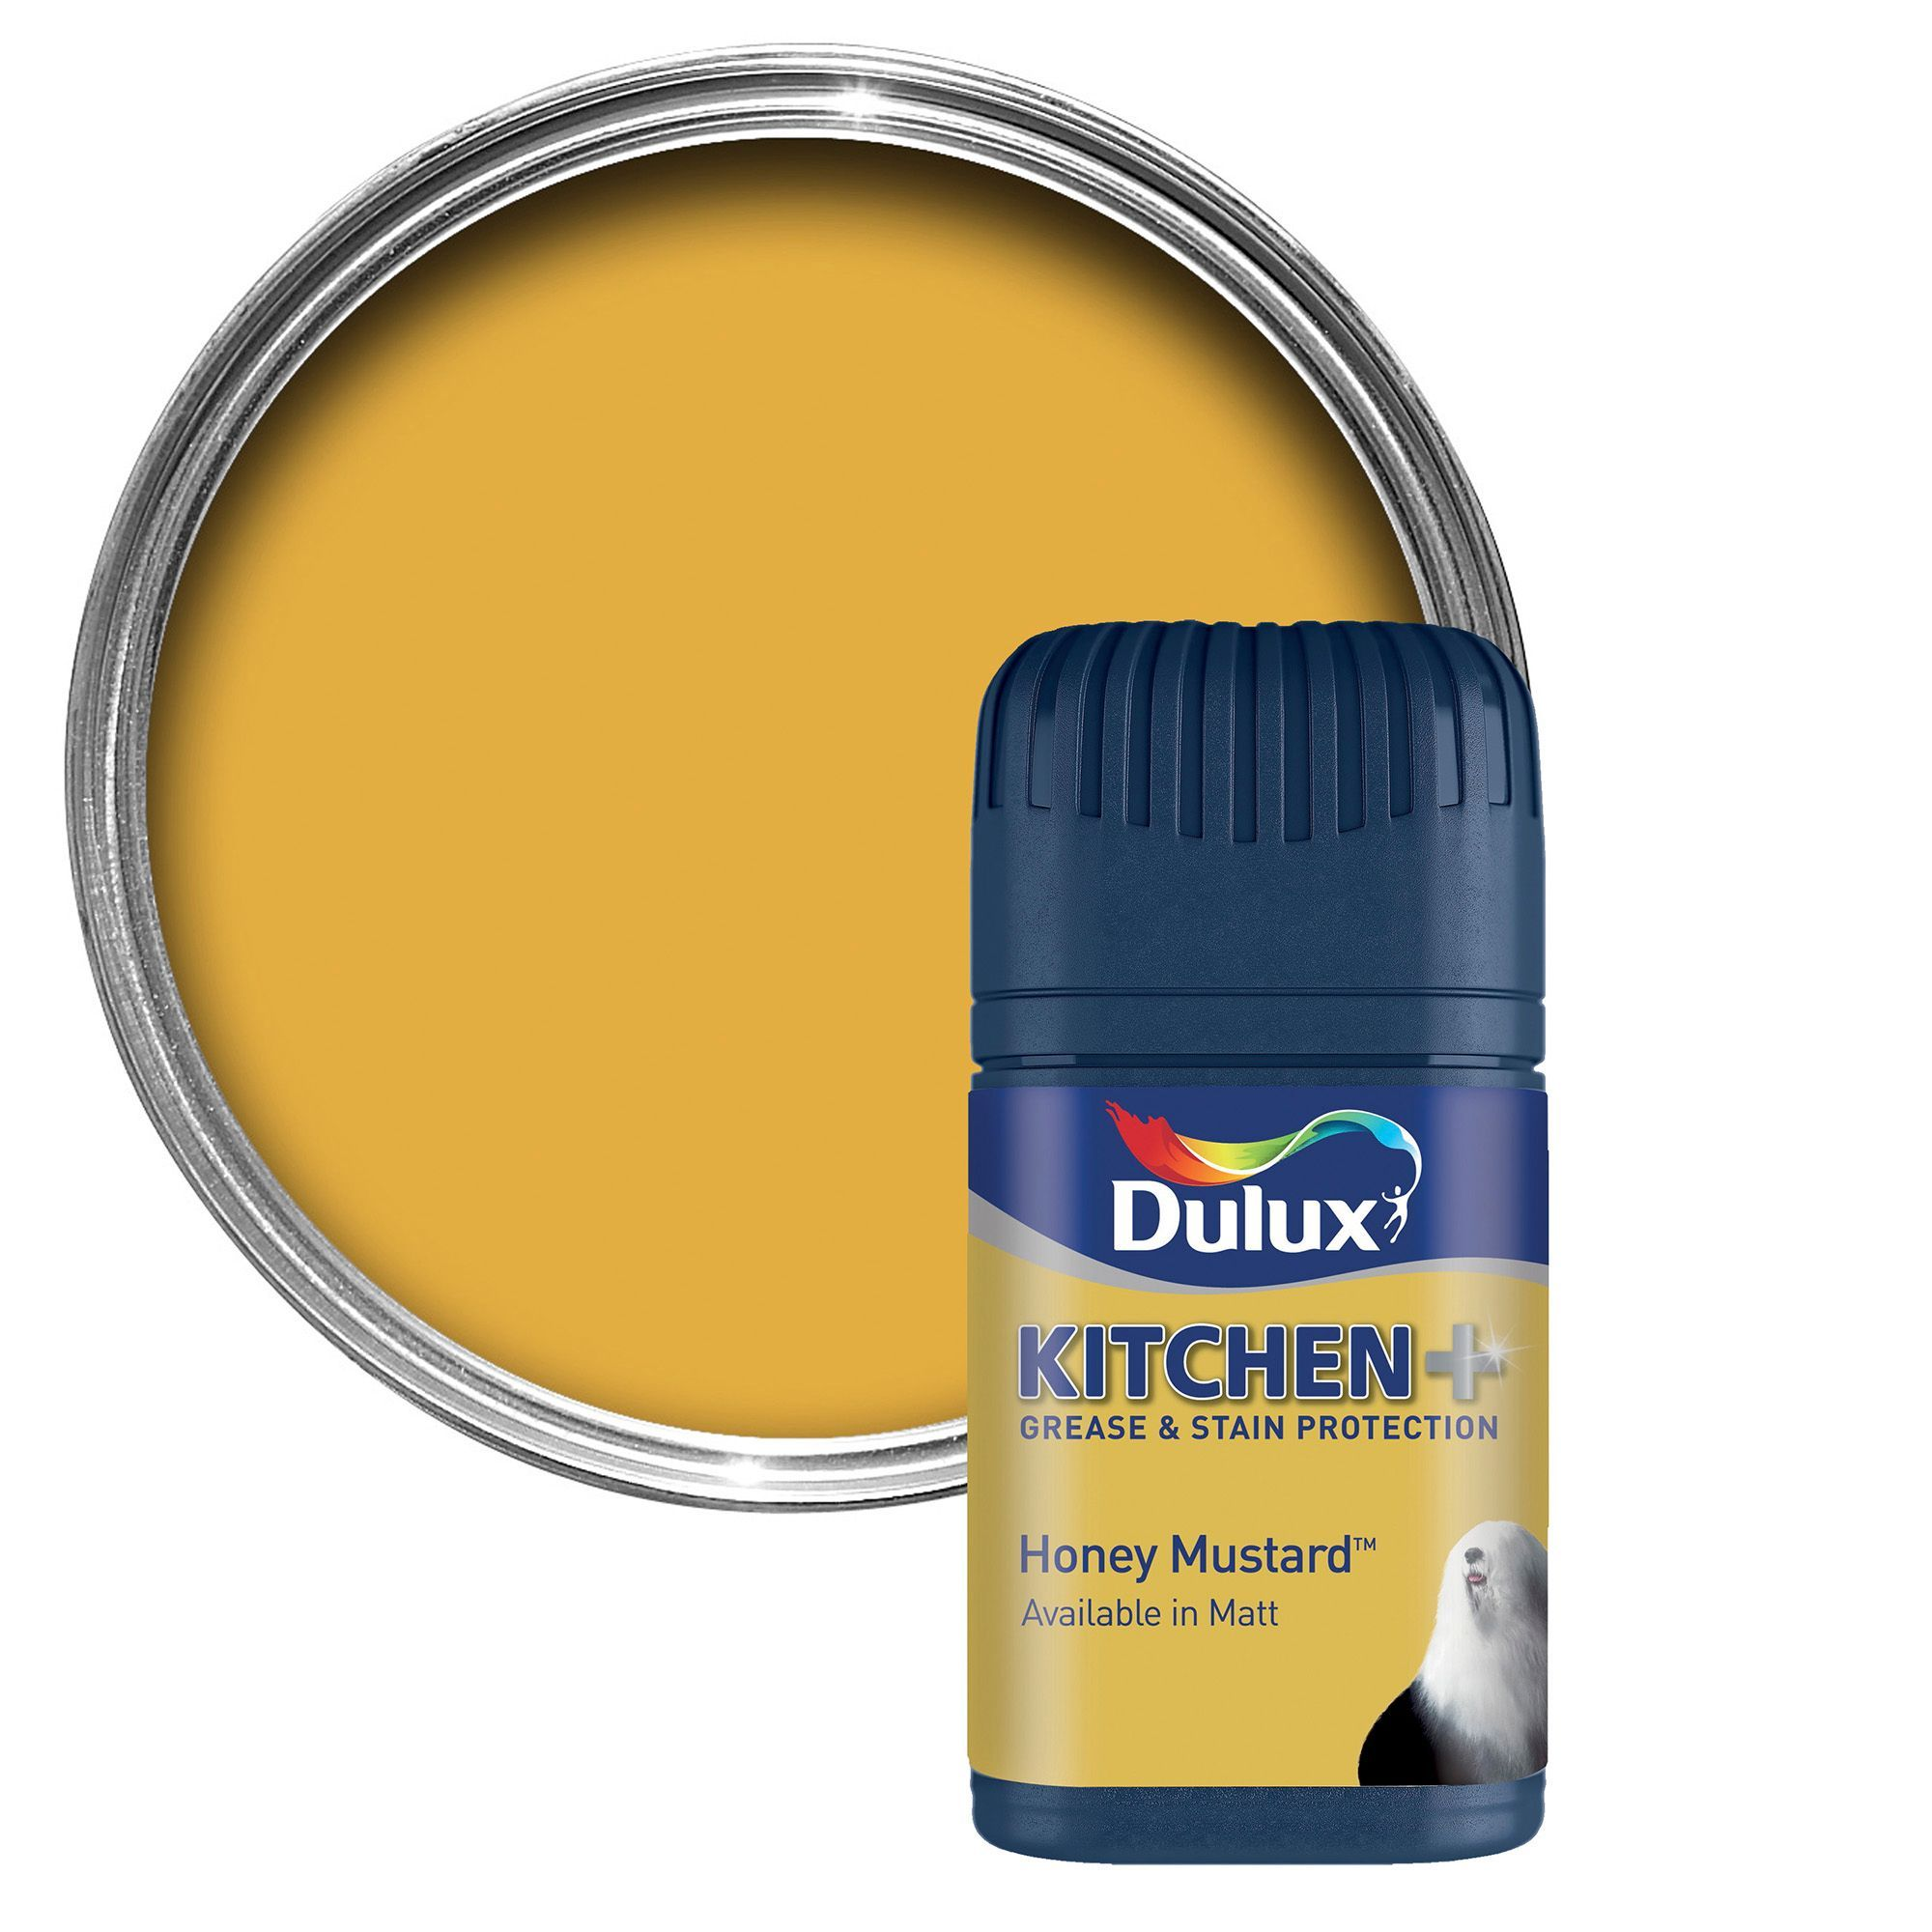 White Kitchen Emulsion dulux kitchen honey mustard matt emulsion paint 50ml tester pot